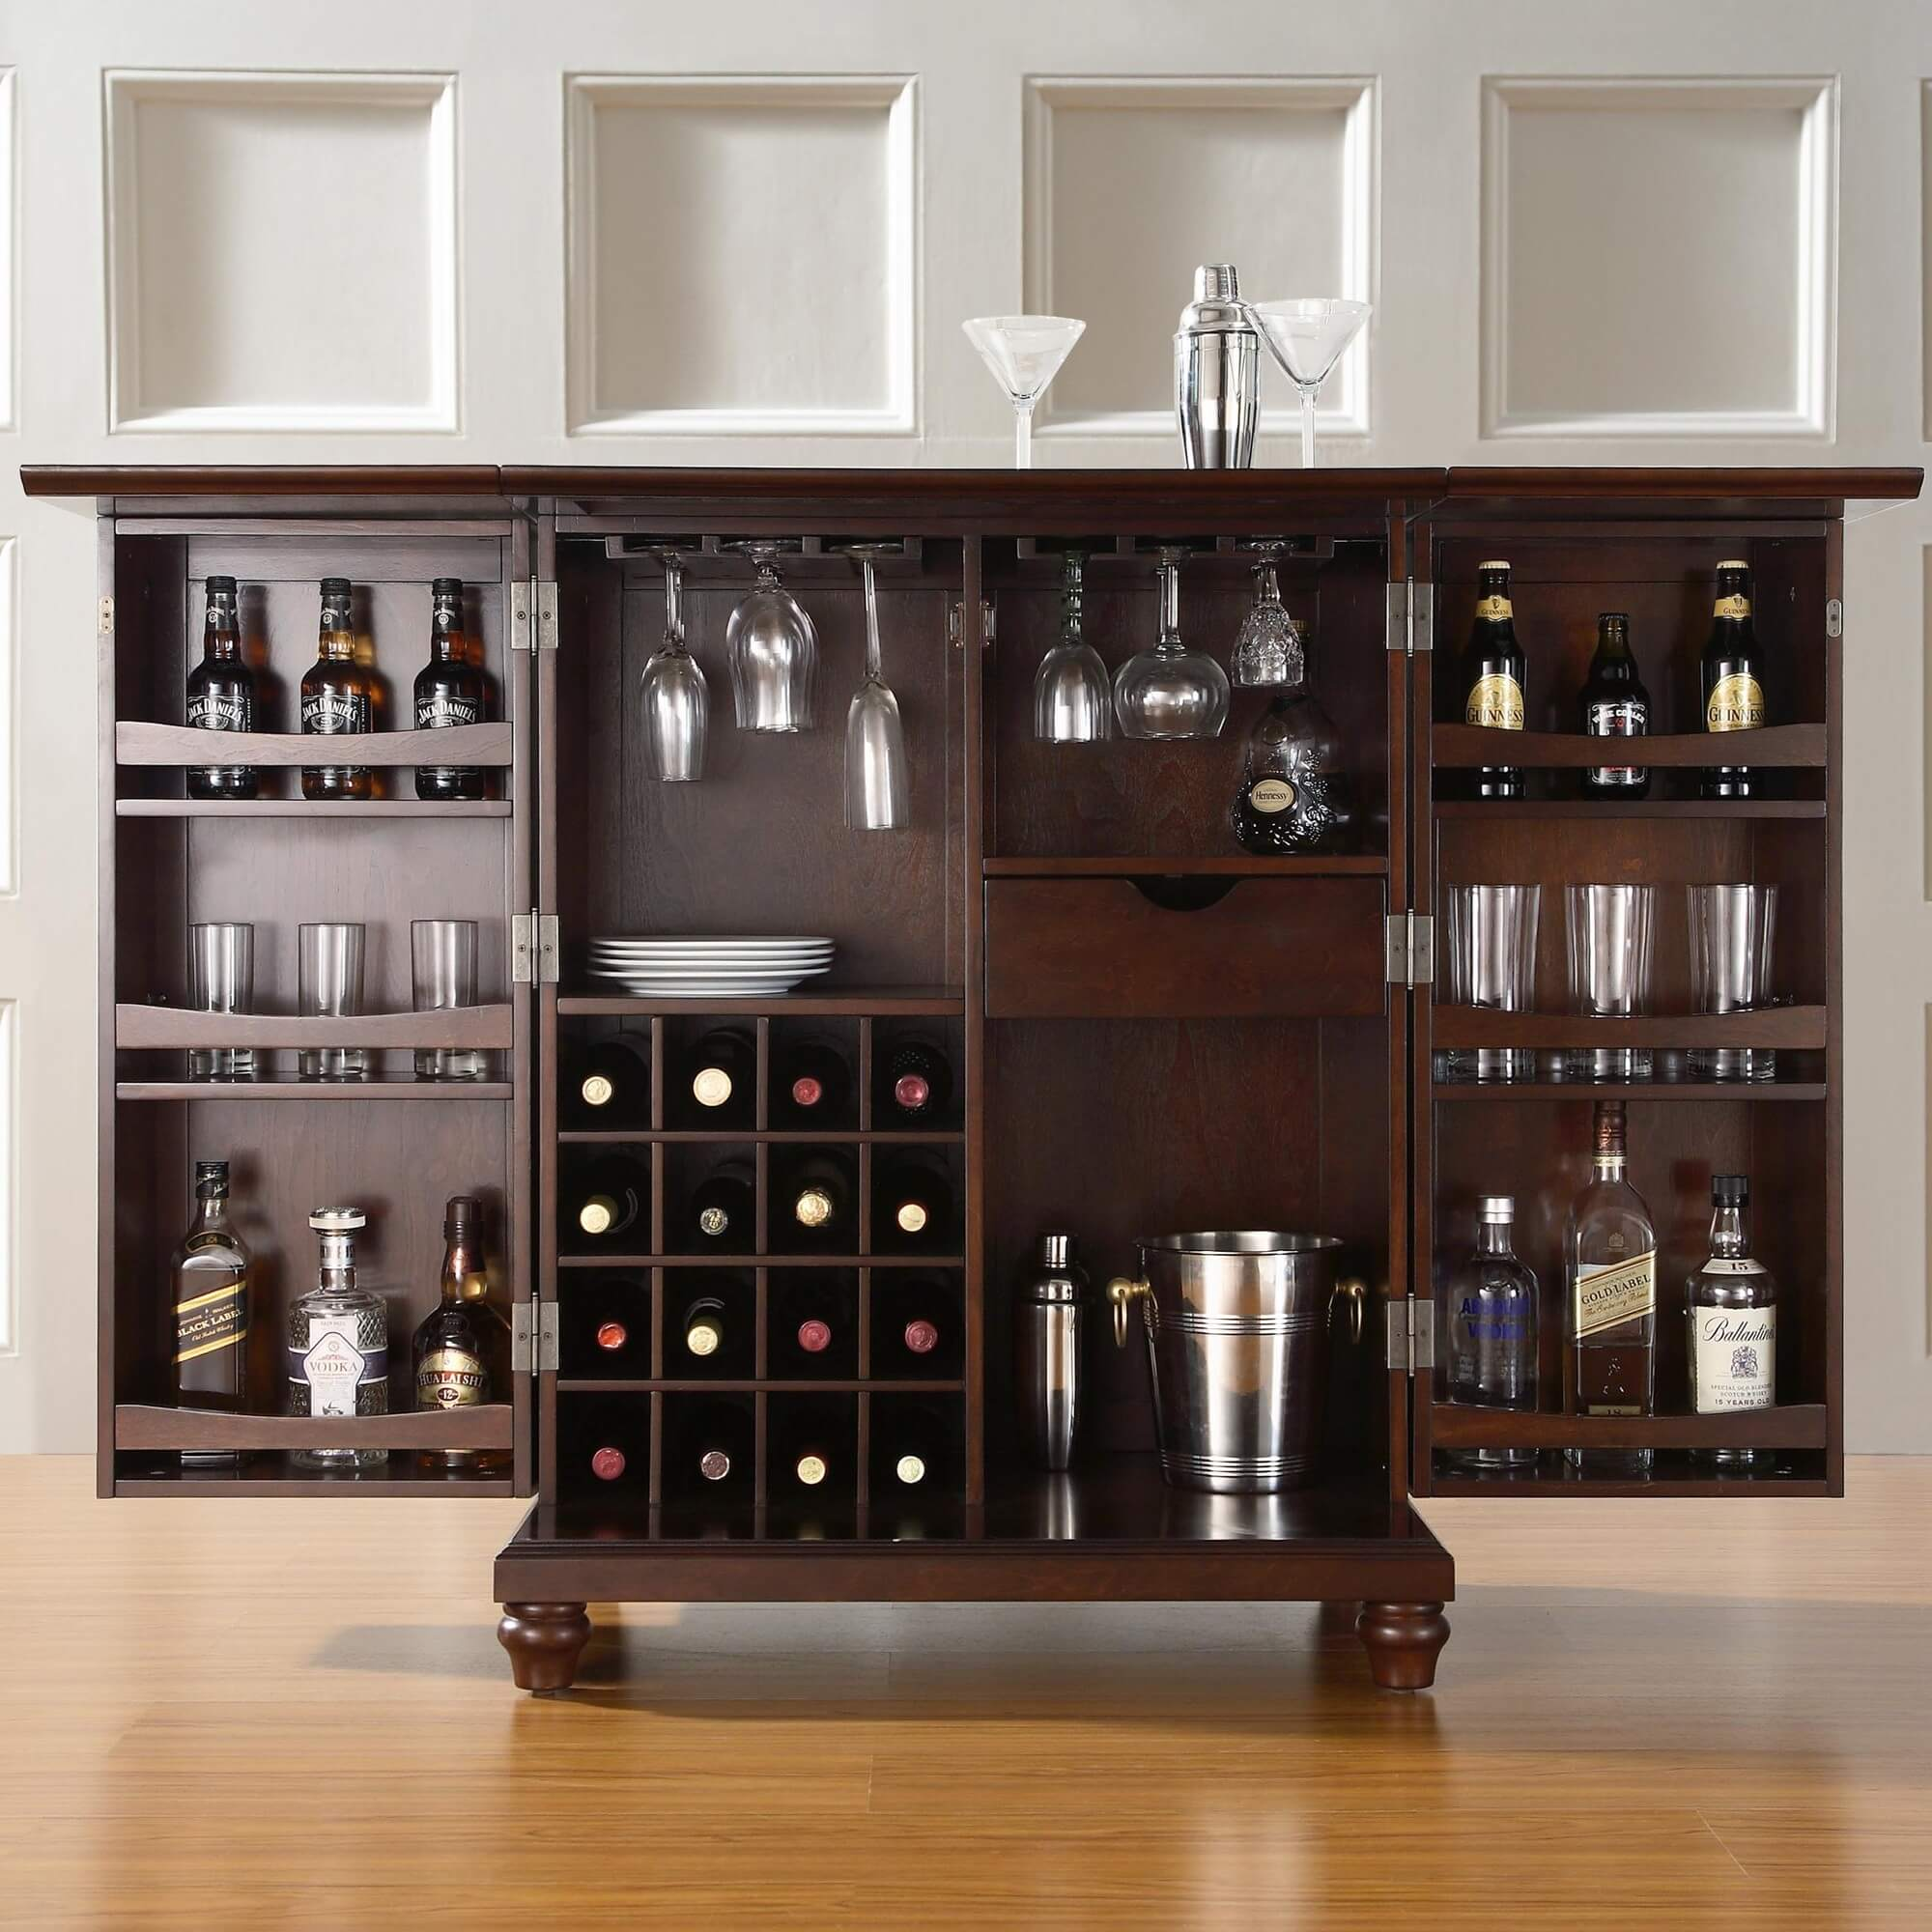 C Rear Storage View Of Elegant Compact Home Bar Cabinet Set